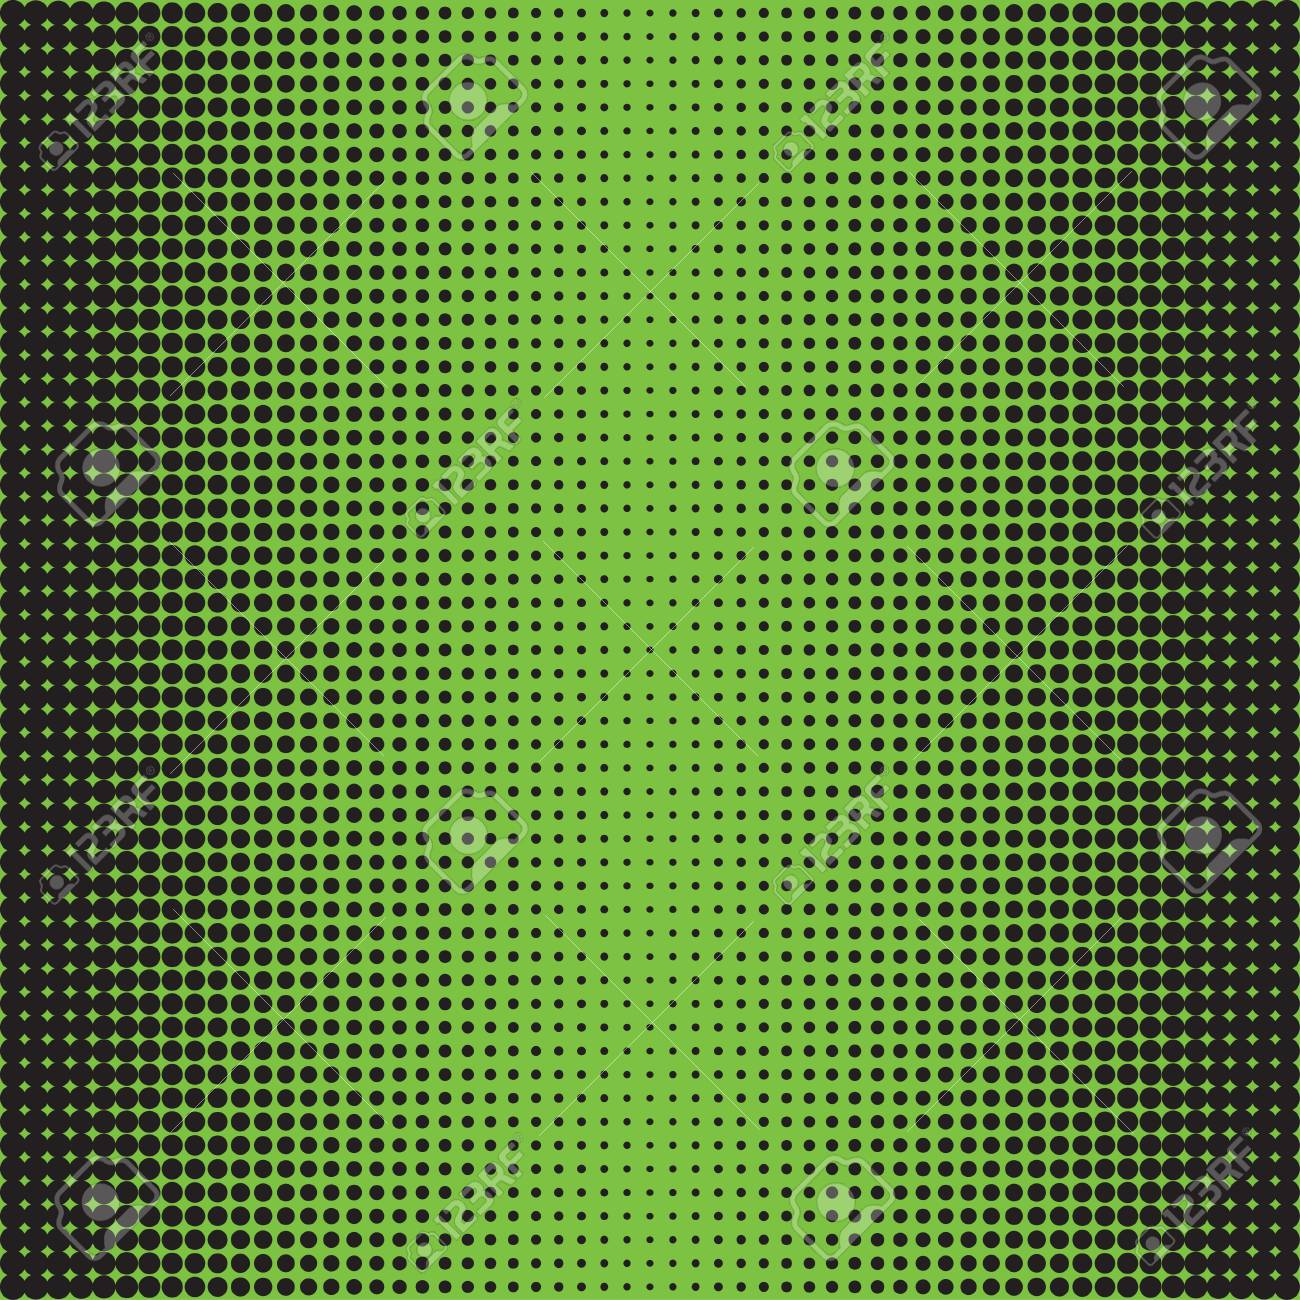 Comic Book Background Halftone Dots Black On Green Texture